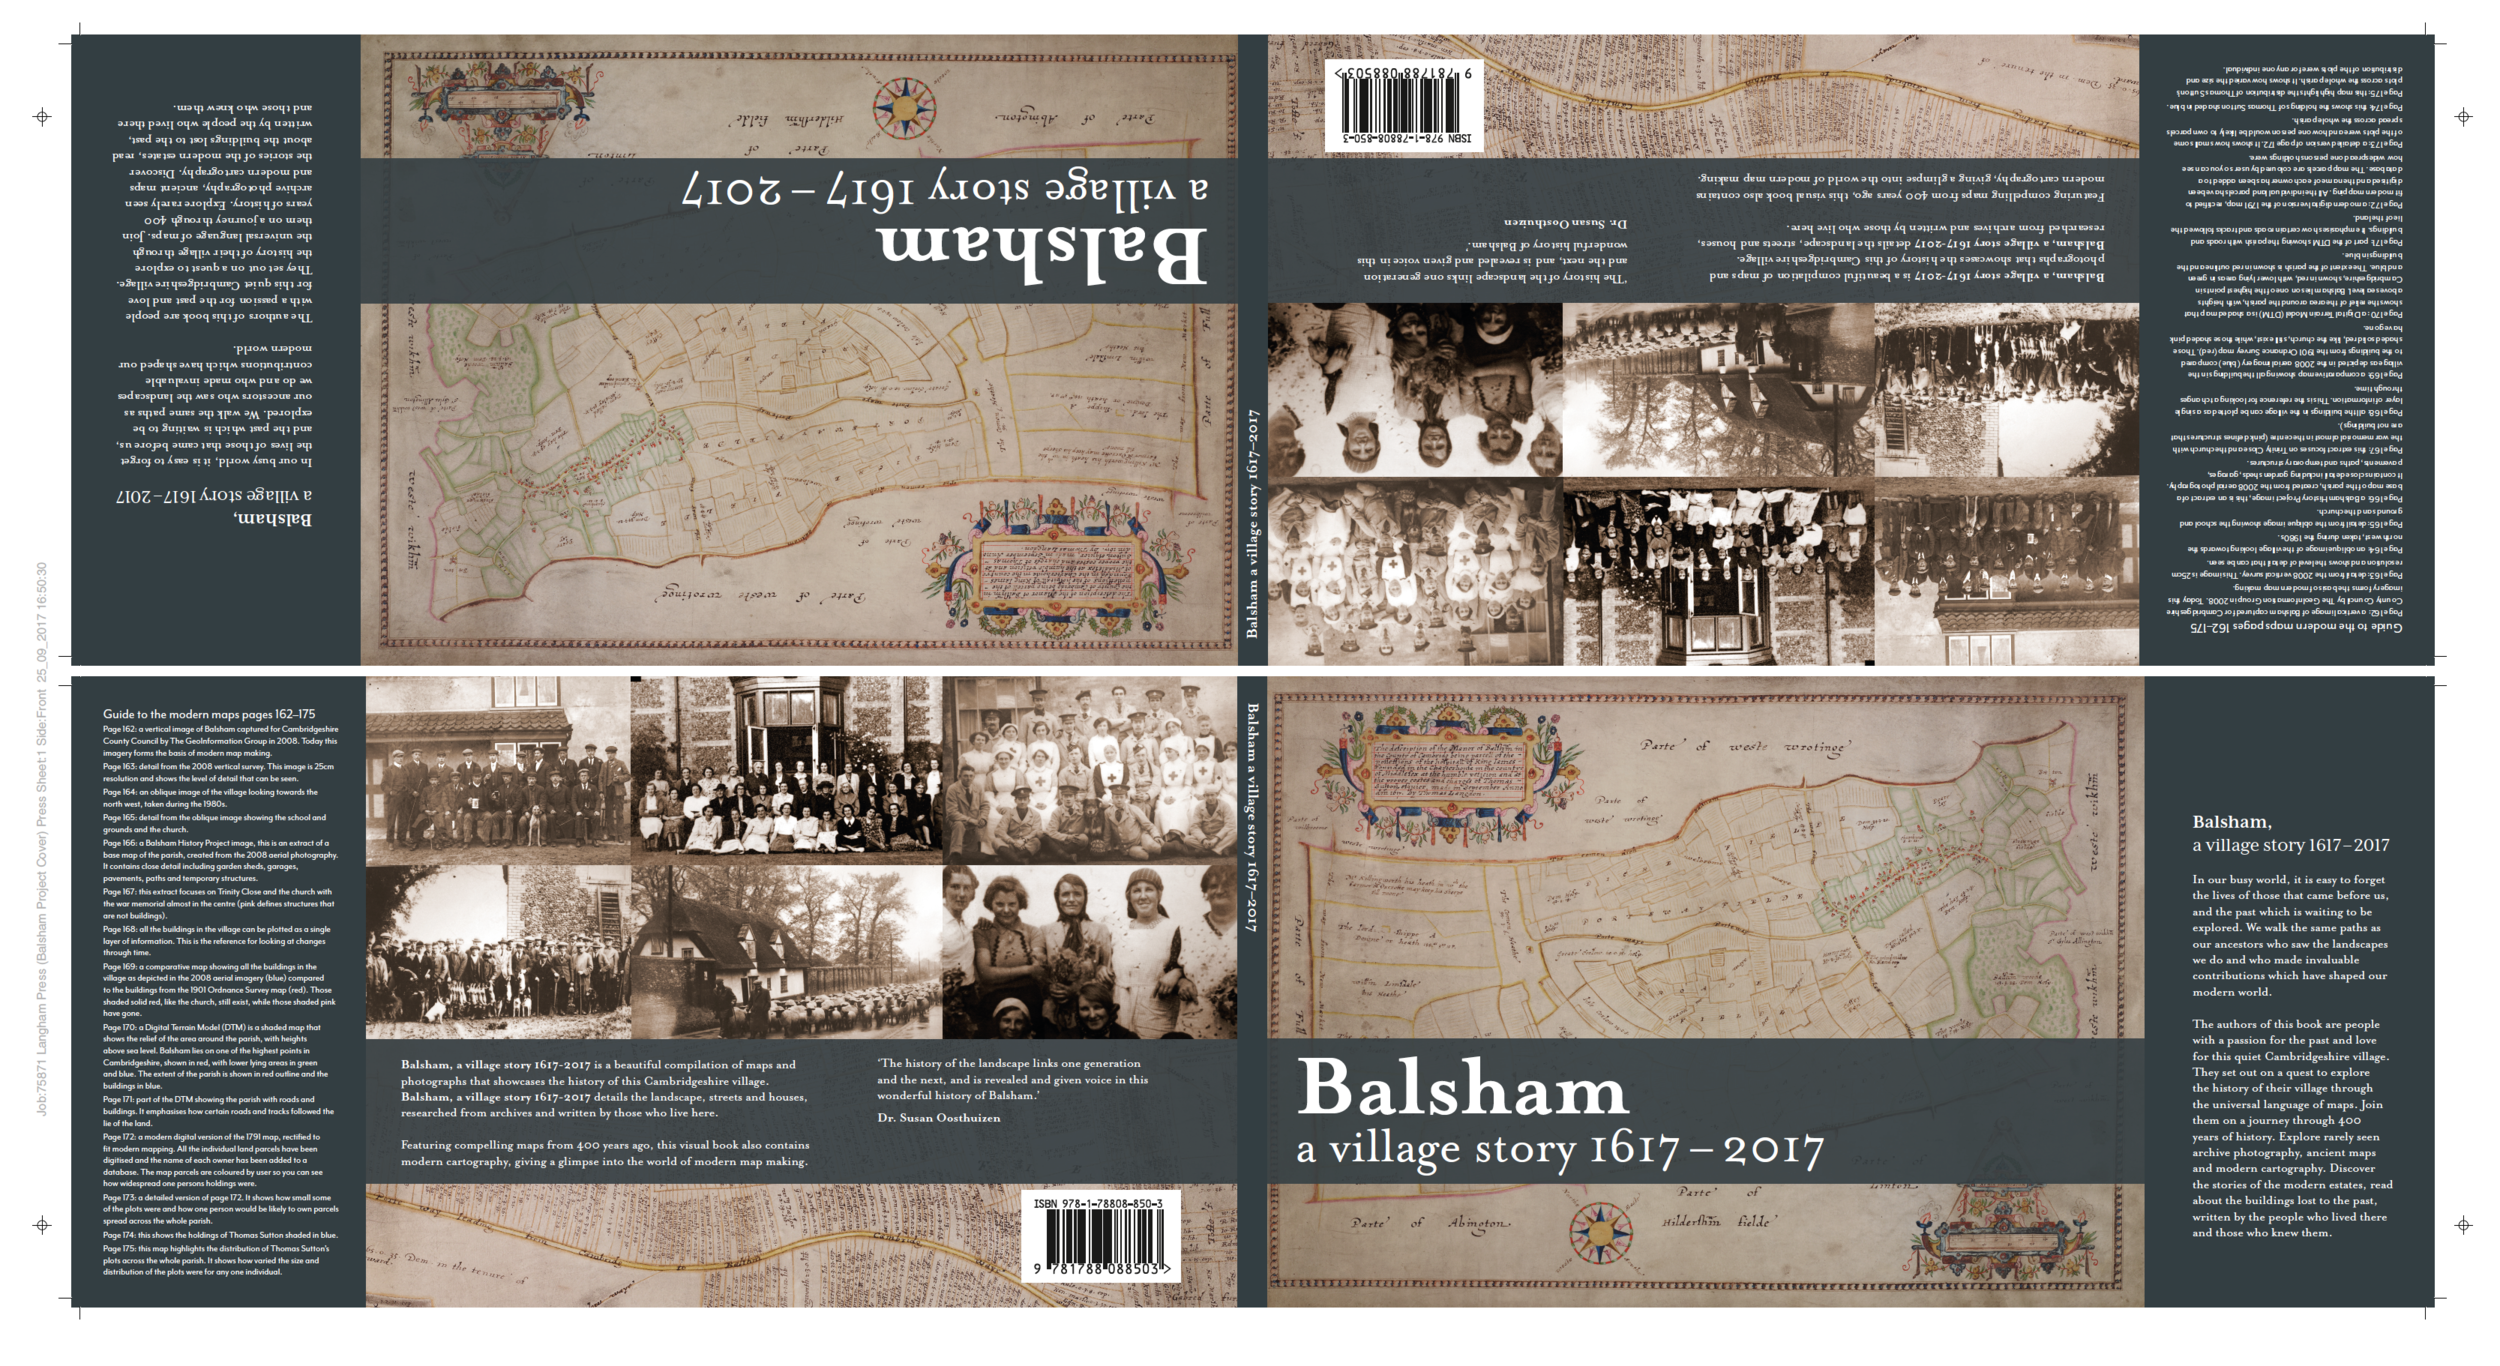 A printers proof for the cover of Balsham, a village story 1617-2017 taken from print ready files supplied by Hello Lovely. Note that I have supplied the barcode for the ISBN, spine and a custom cover design with pull out information flaps.